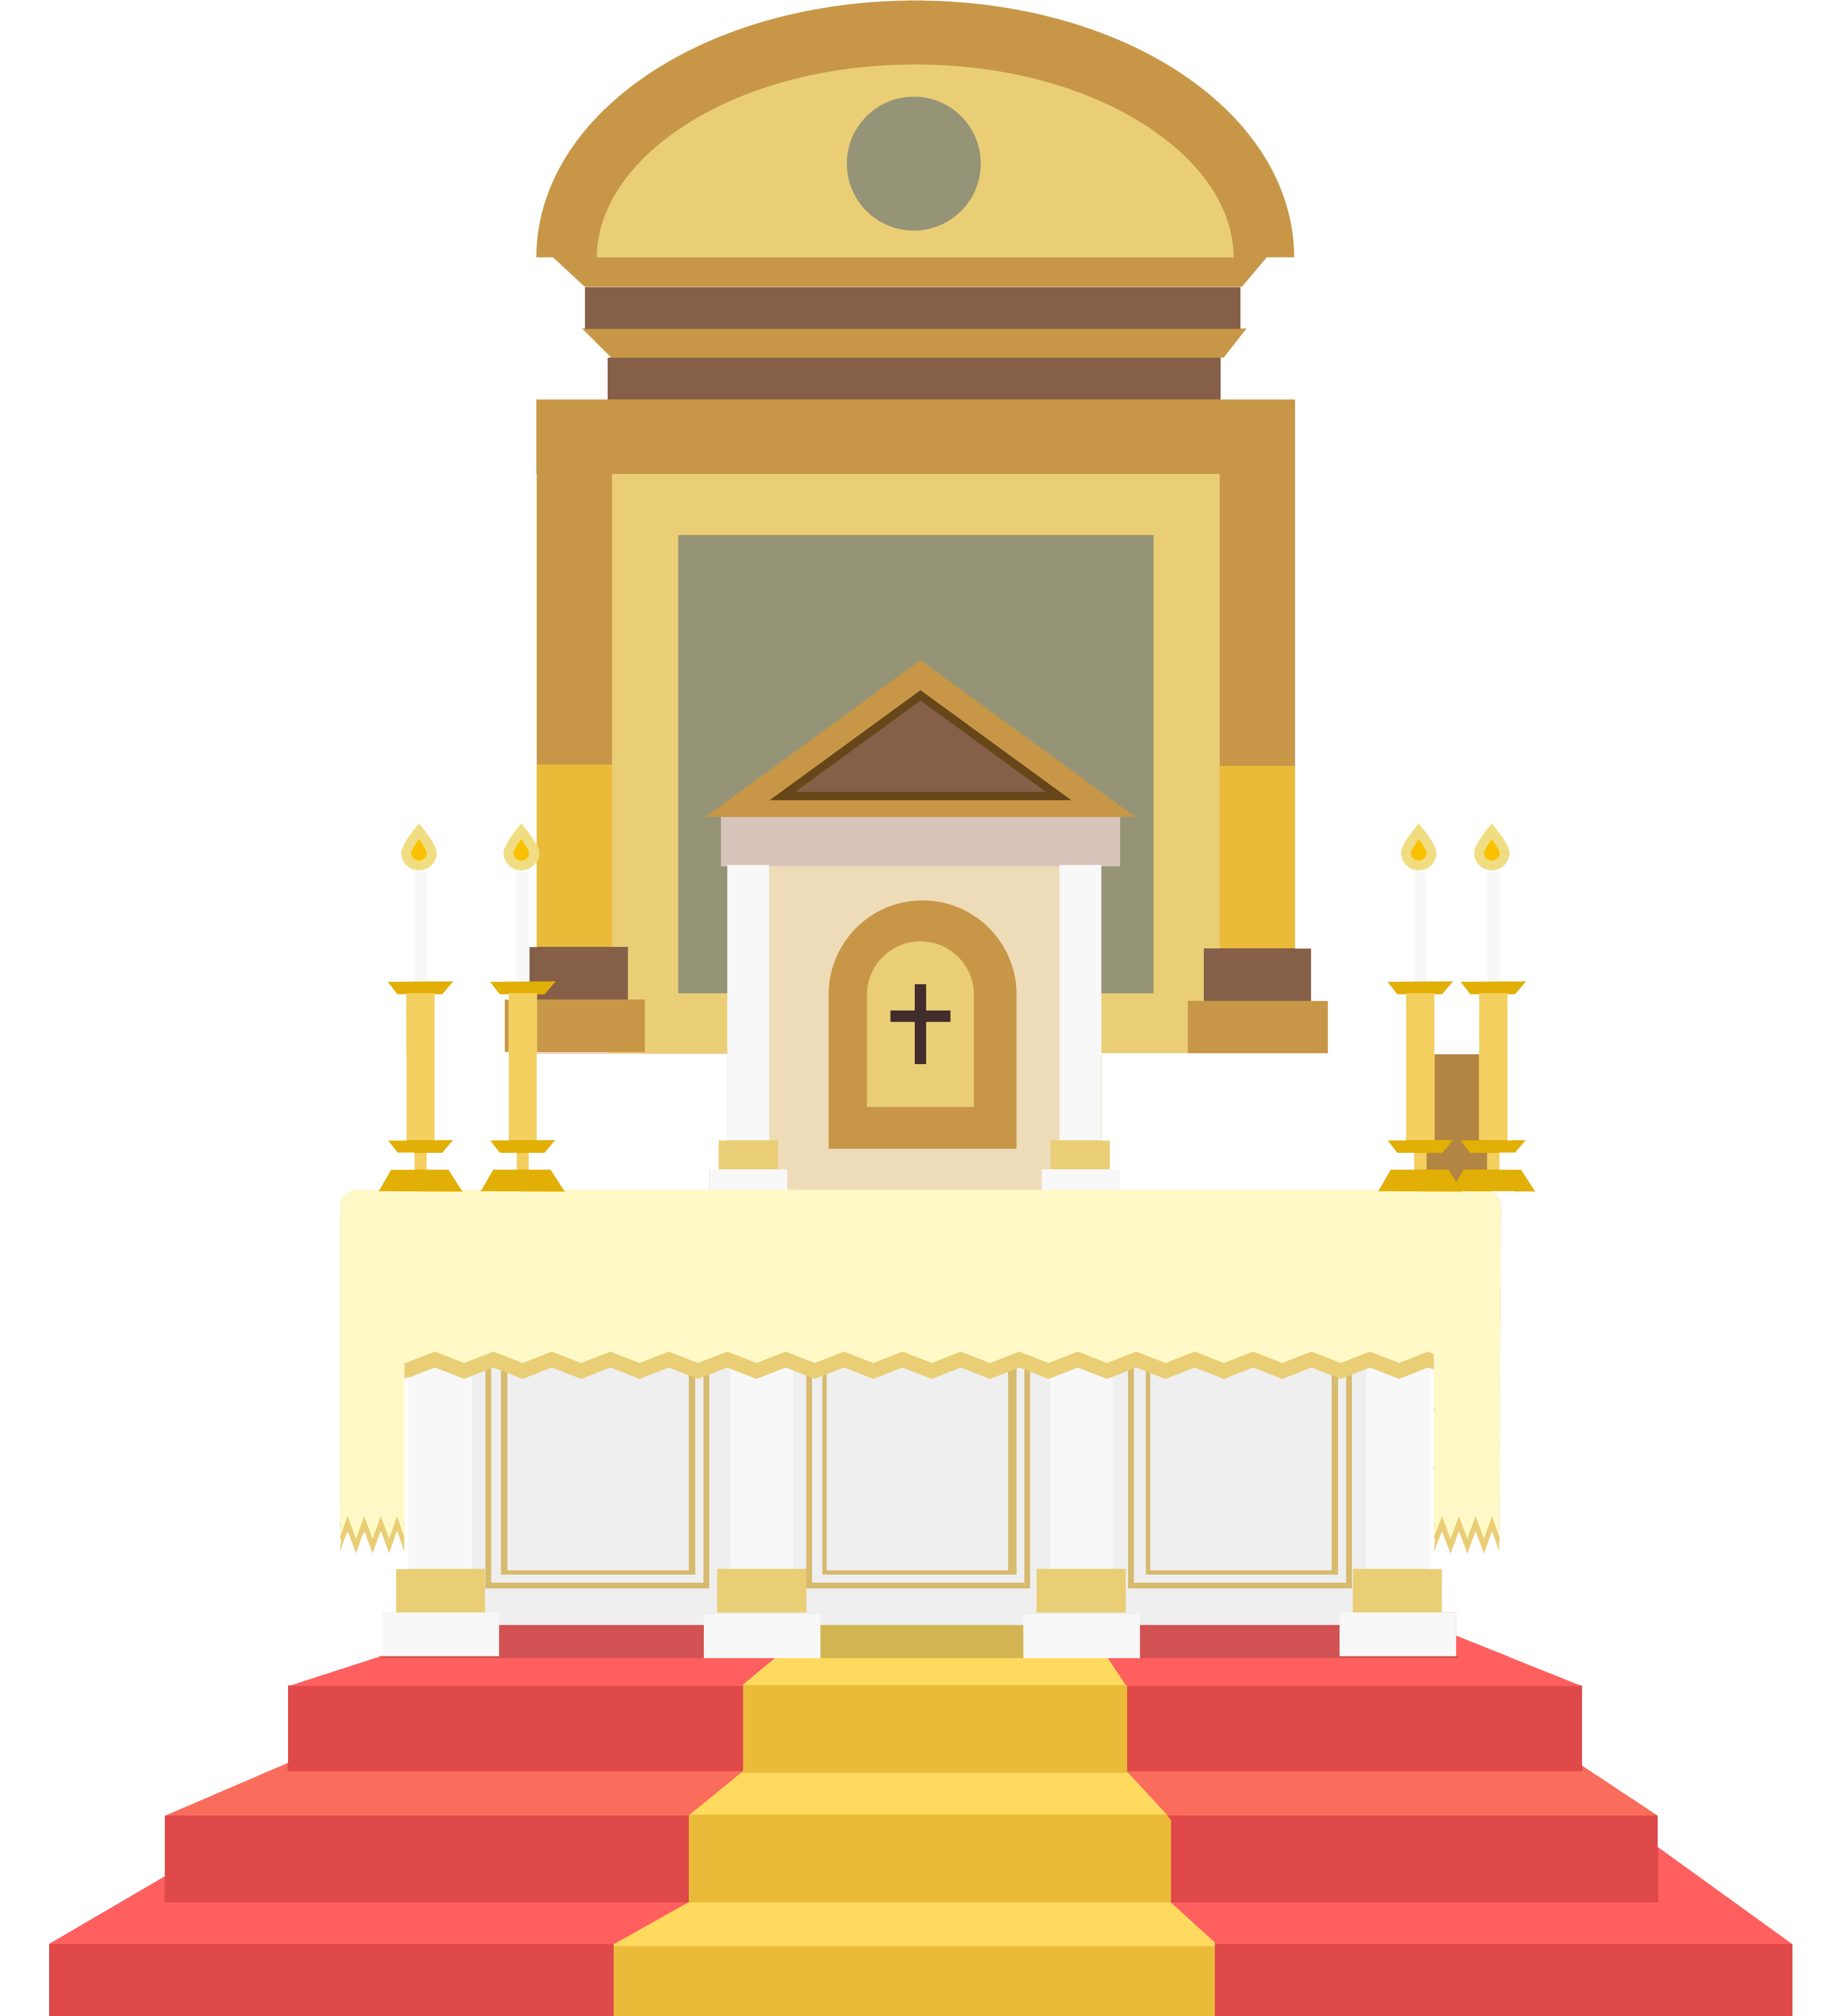 Altar drawing architectural. In the catholic church